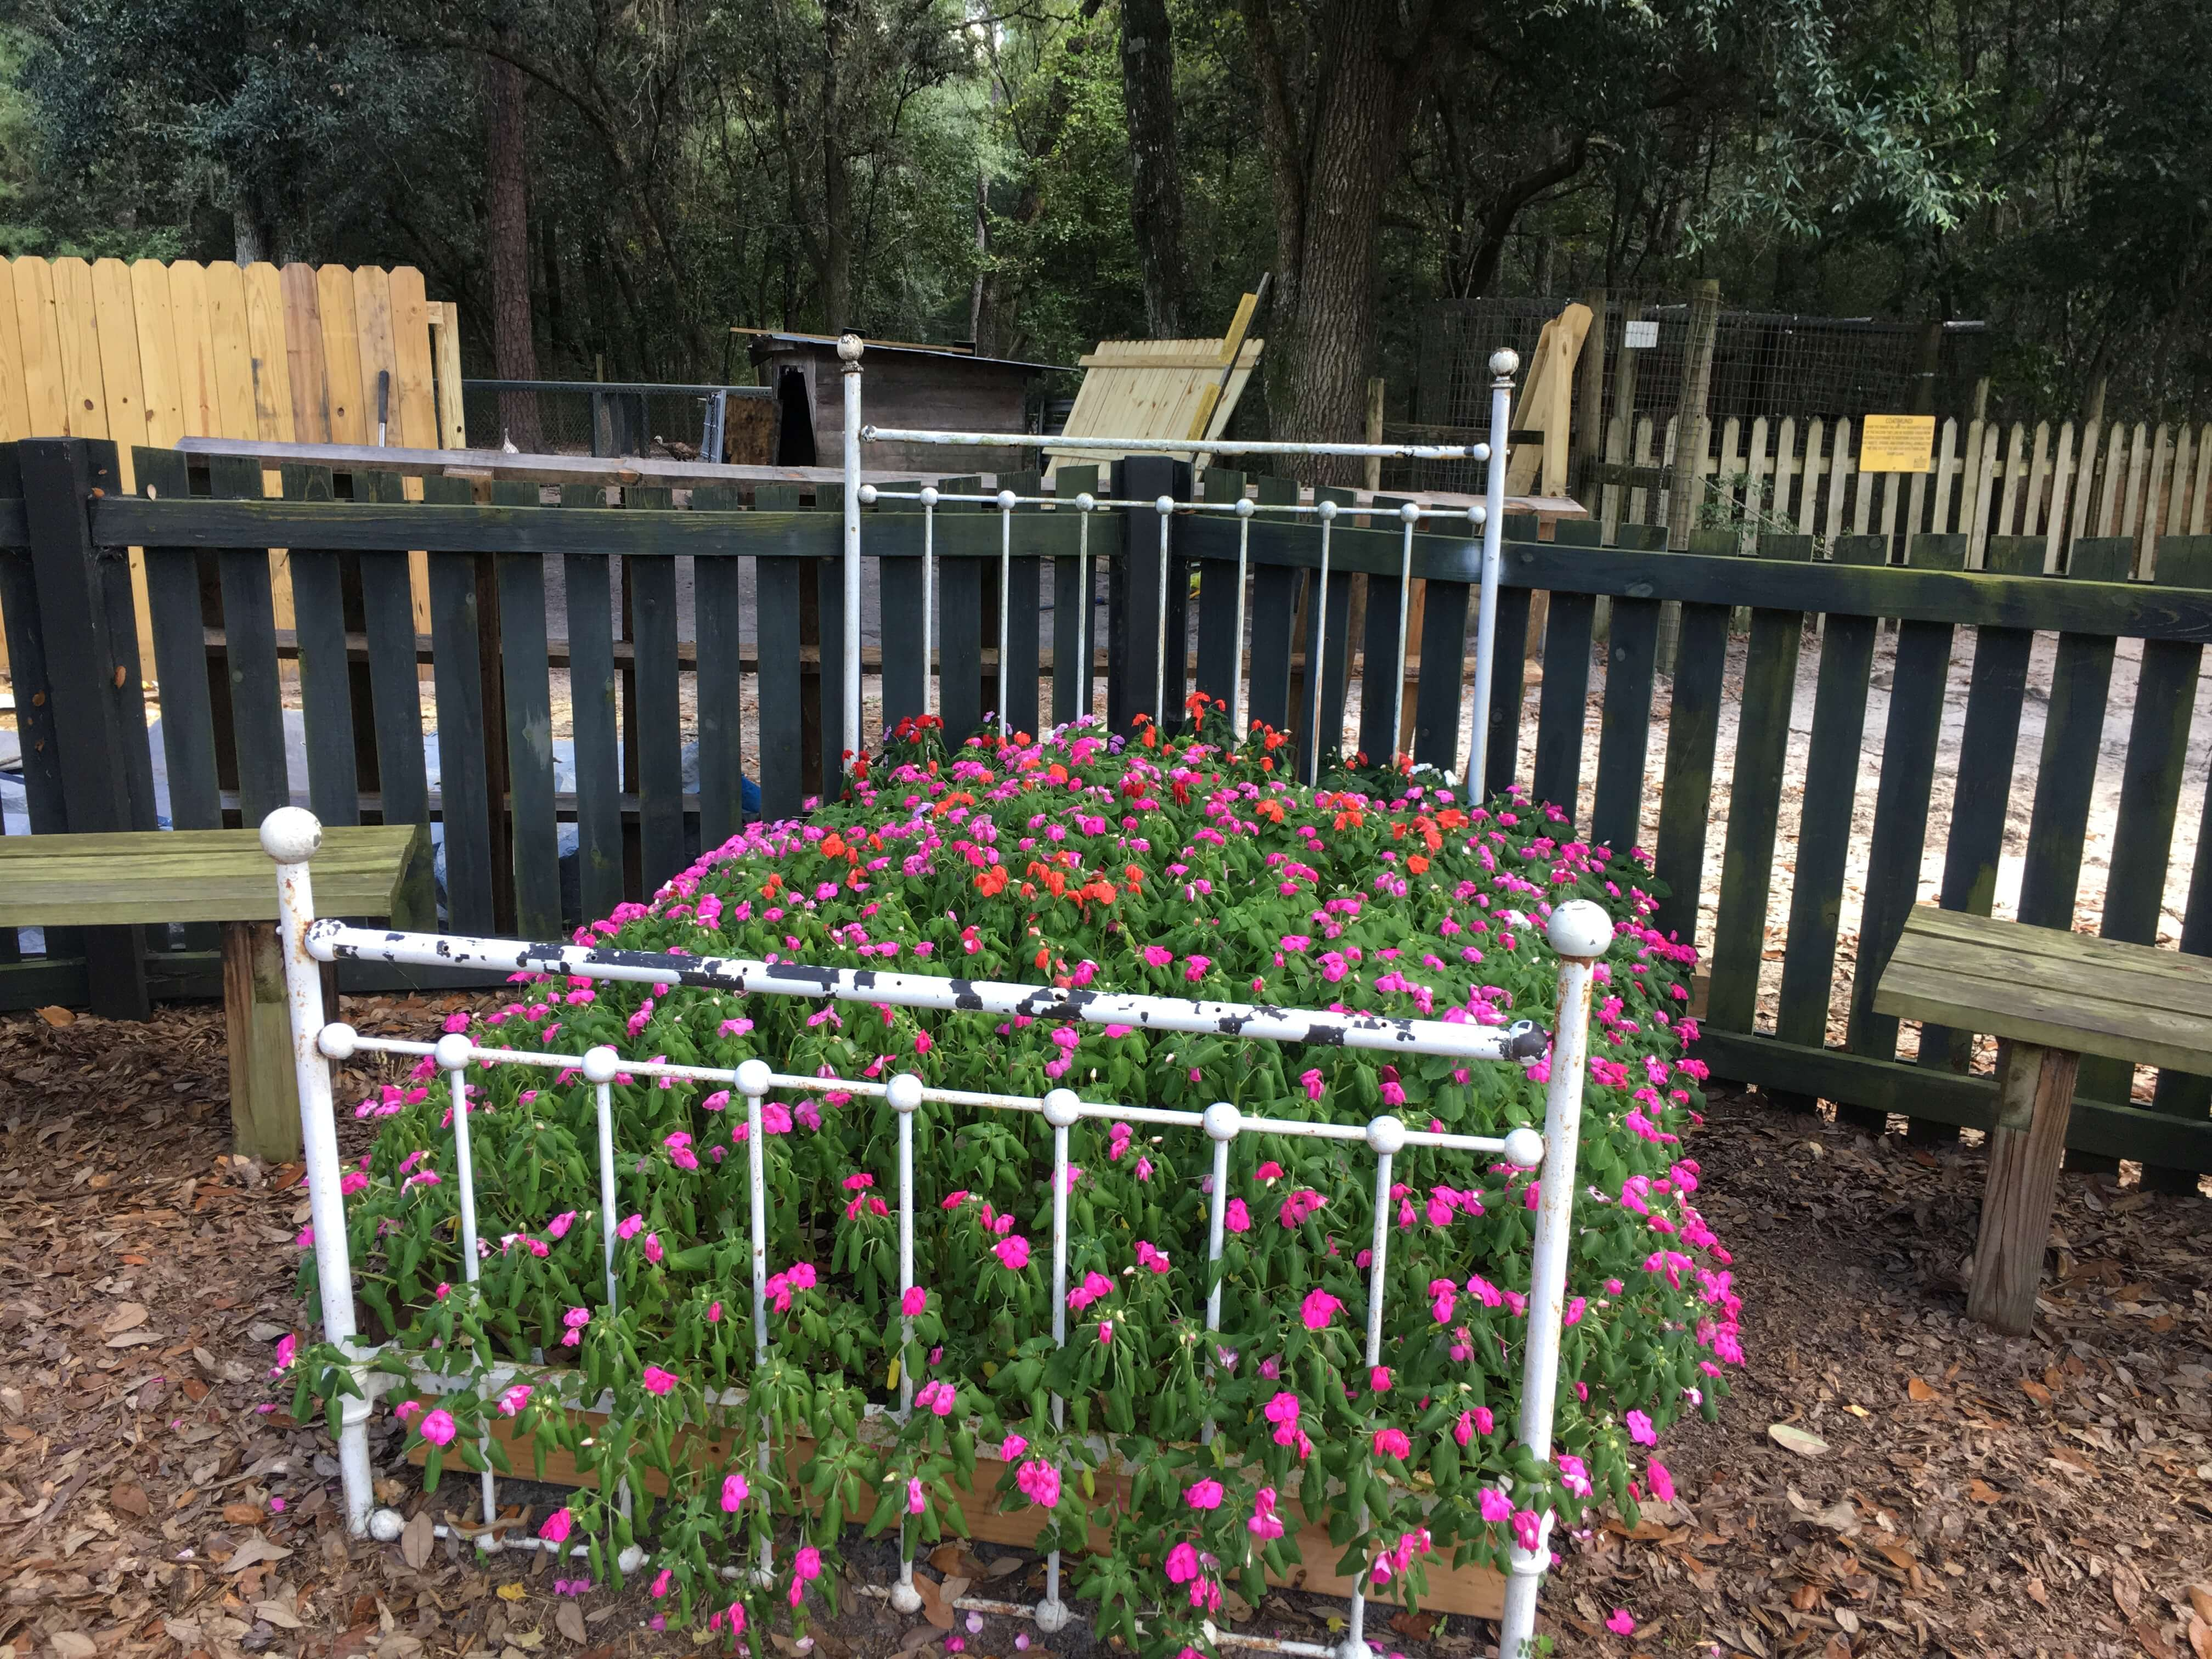 flower bed at bee city zoo charleston with kids